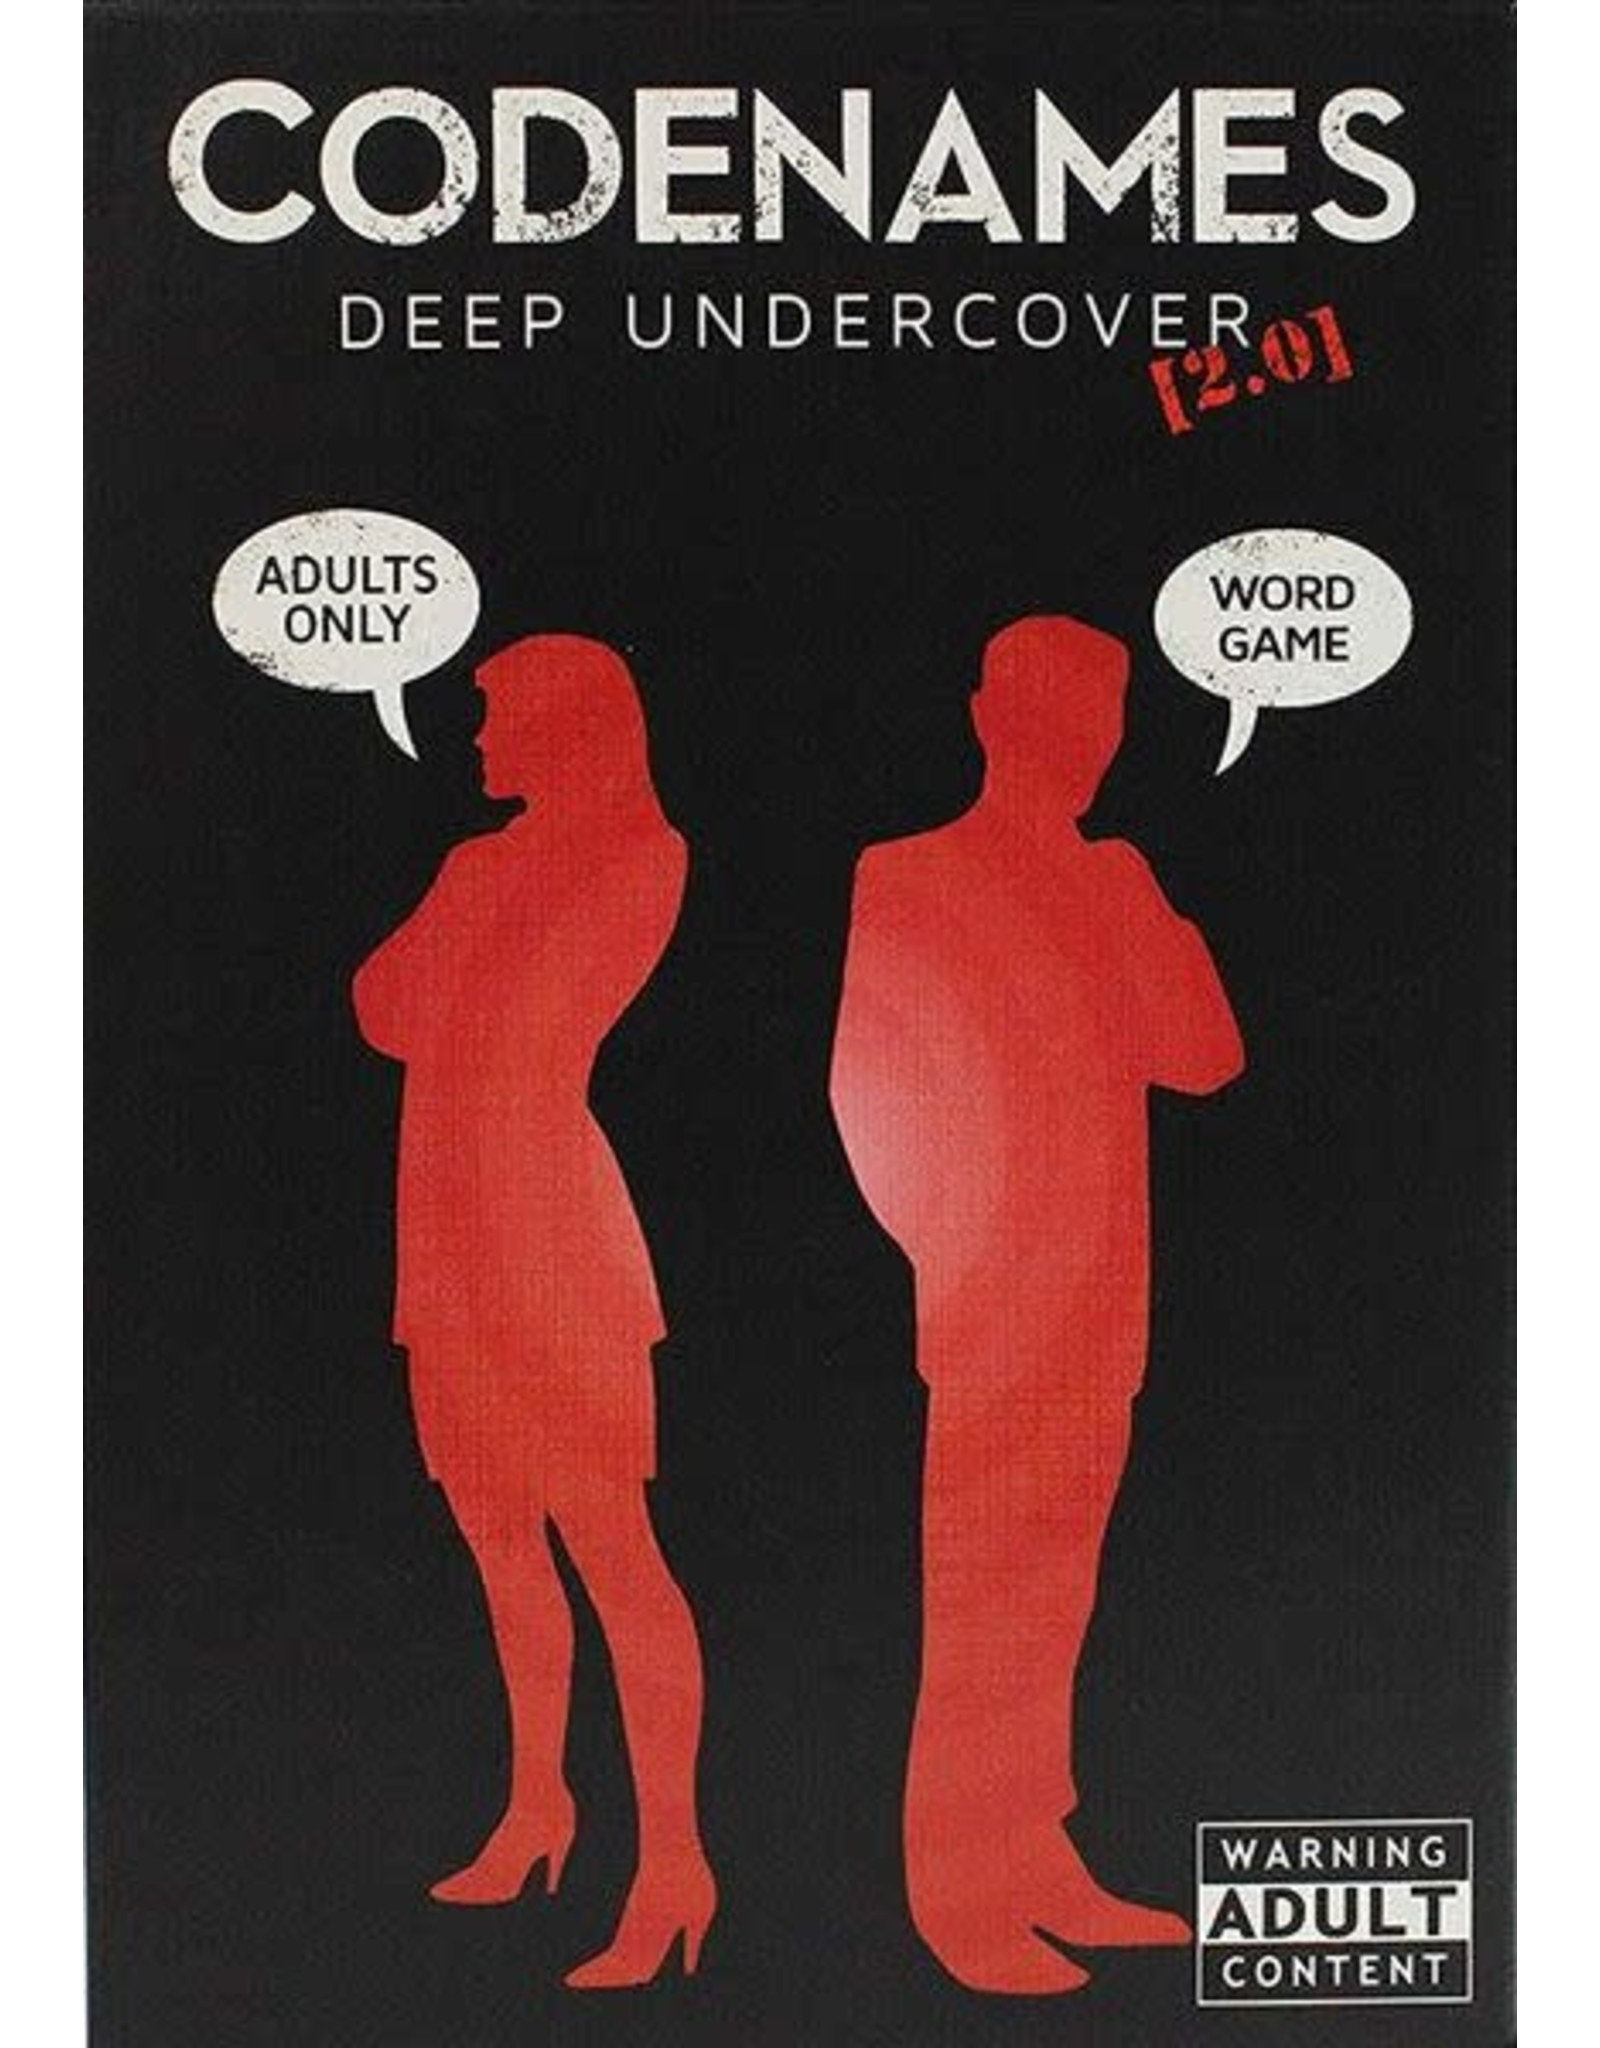 The OP Codenames: Deep Undercover 2.0